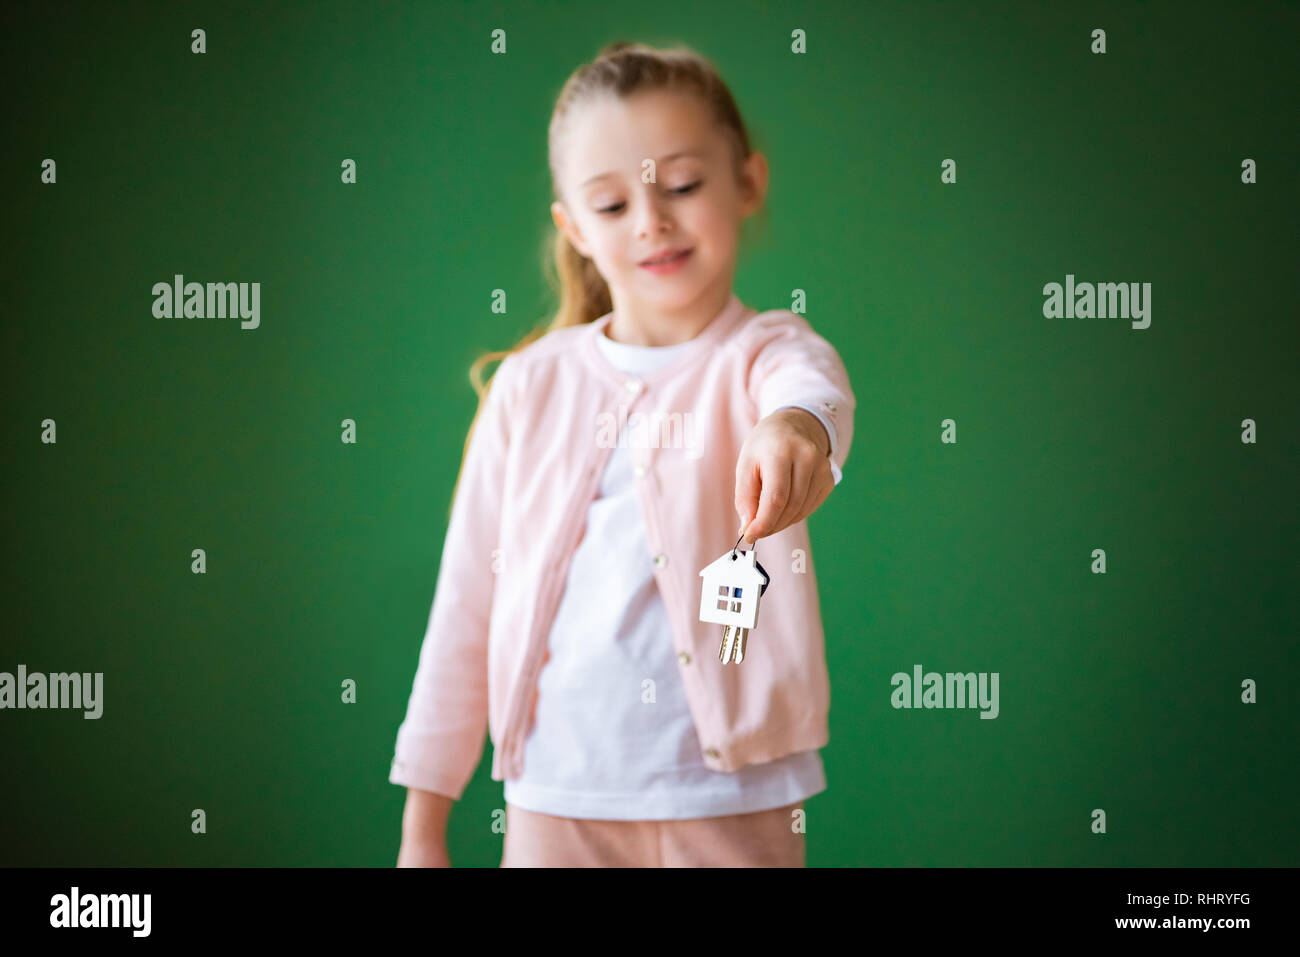 selective focus of kid holding house shaped key chain on green background - Stock Image